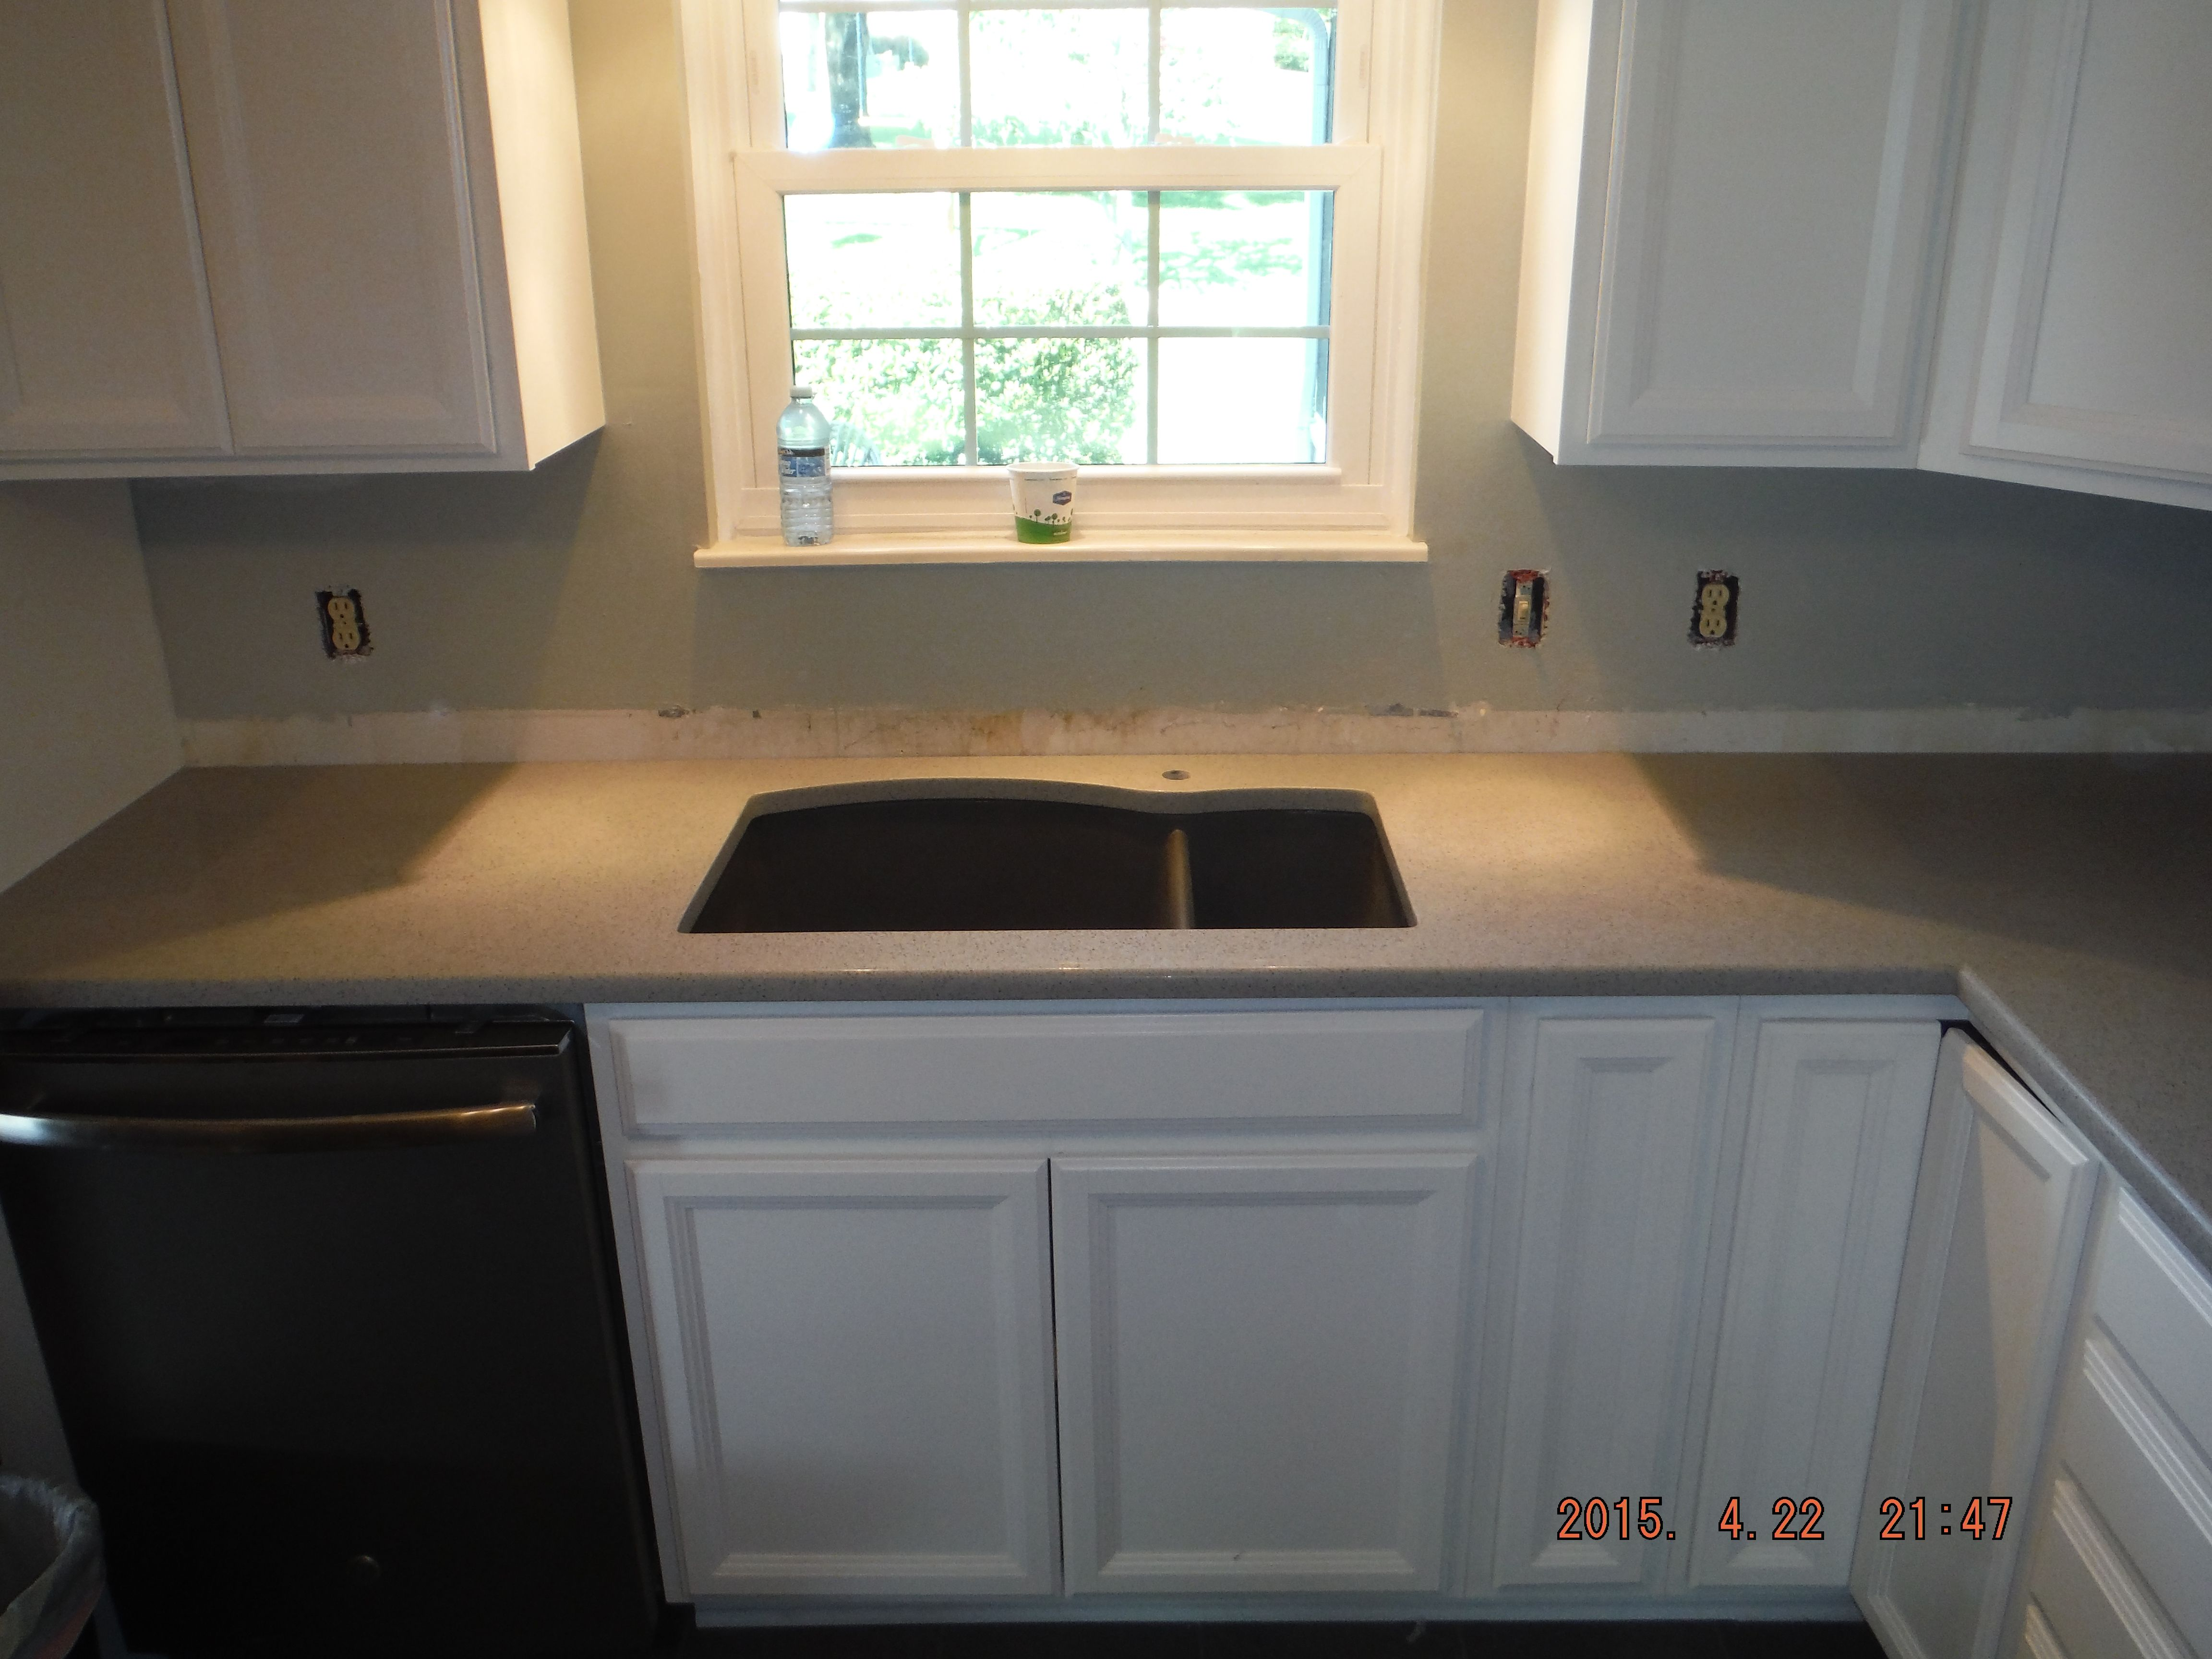 Castle LG Viatera Quartz Kitchen Countertop Install For The Davis Family.  Knoxvilleu0027s Stone Interiors.